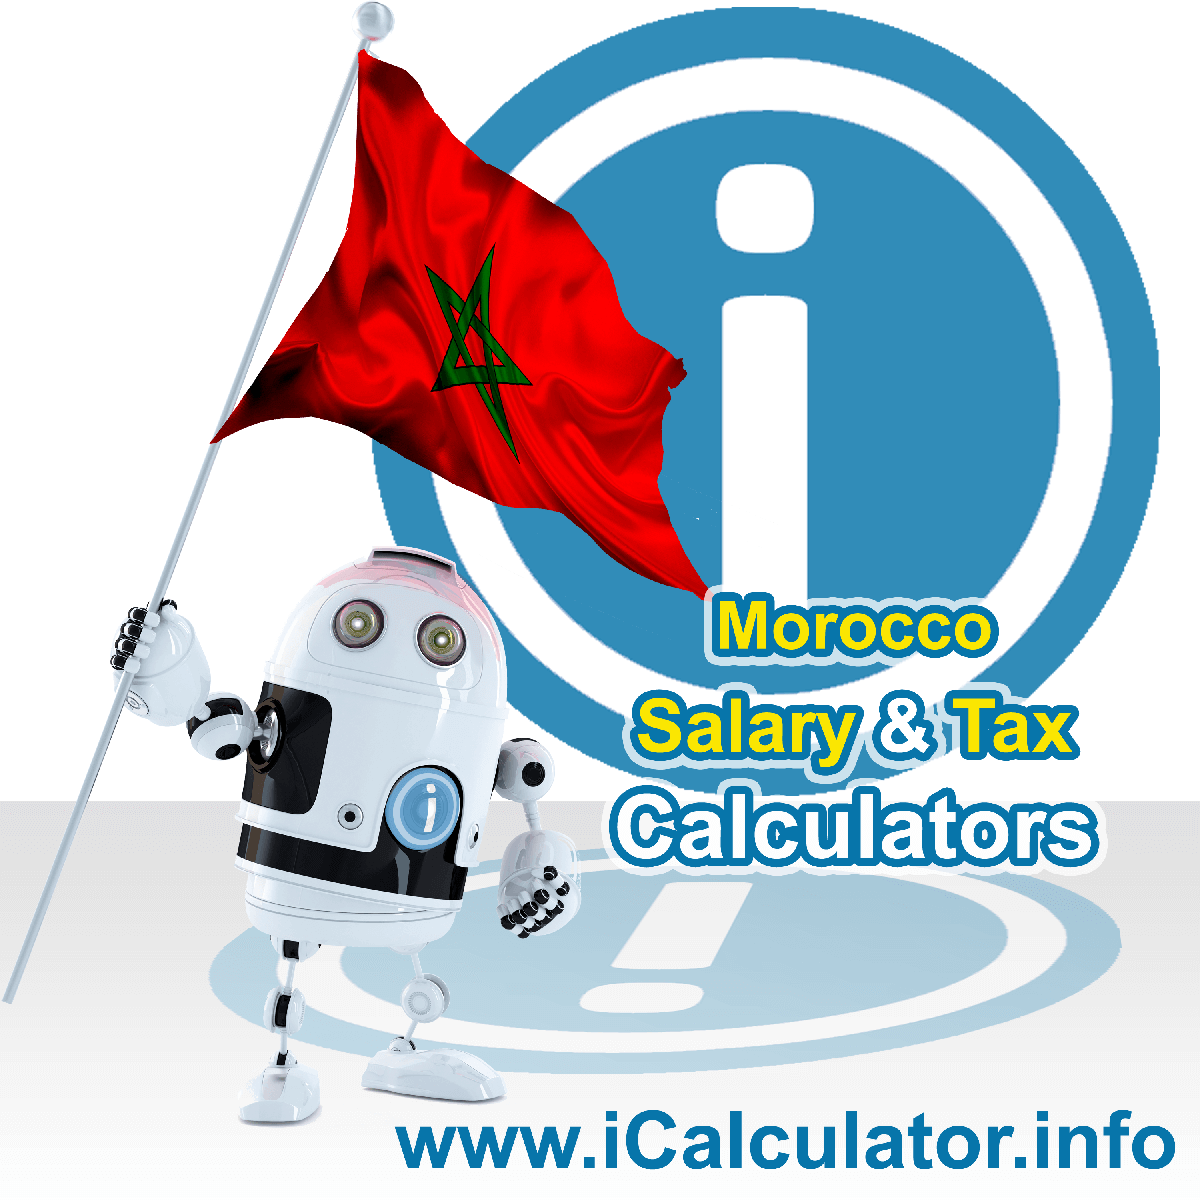 Morocco Wage Calculator. This image shows the Morocco flag and information relating to the tax formula for the Morocco Tax Calculator